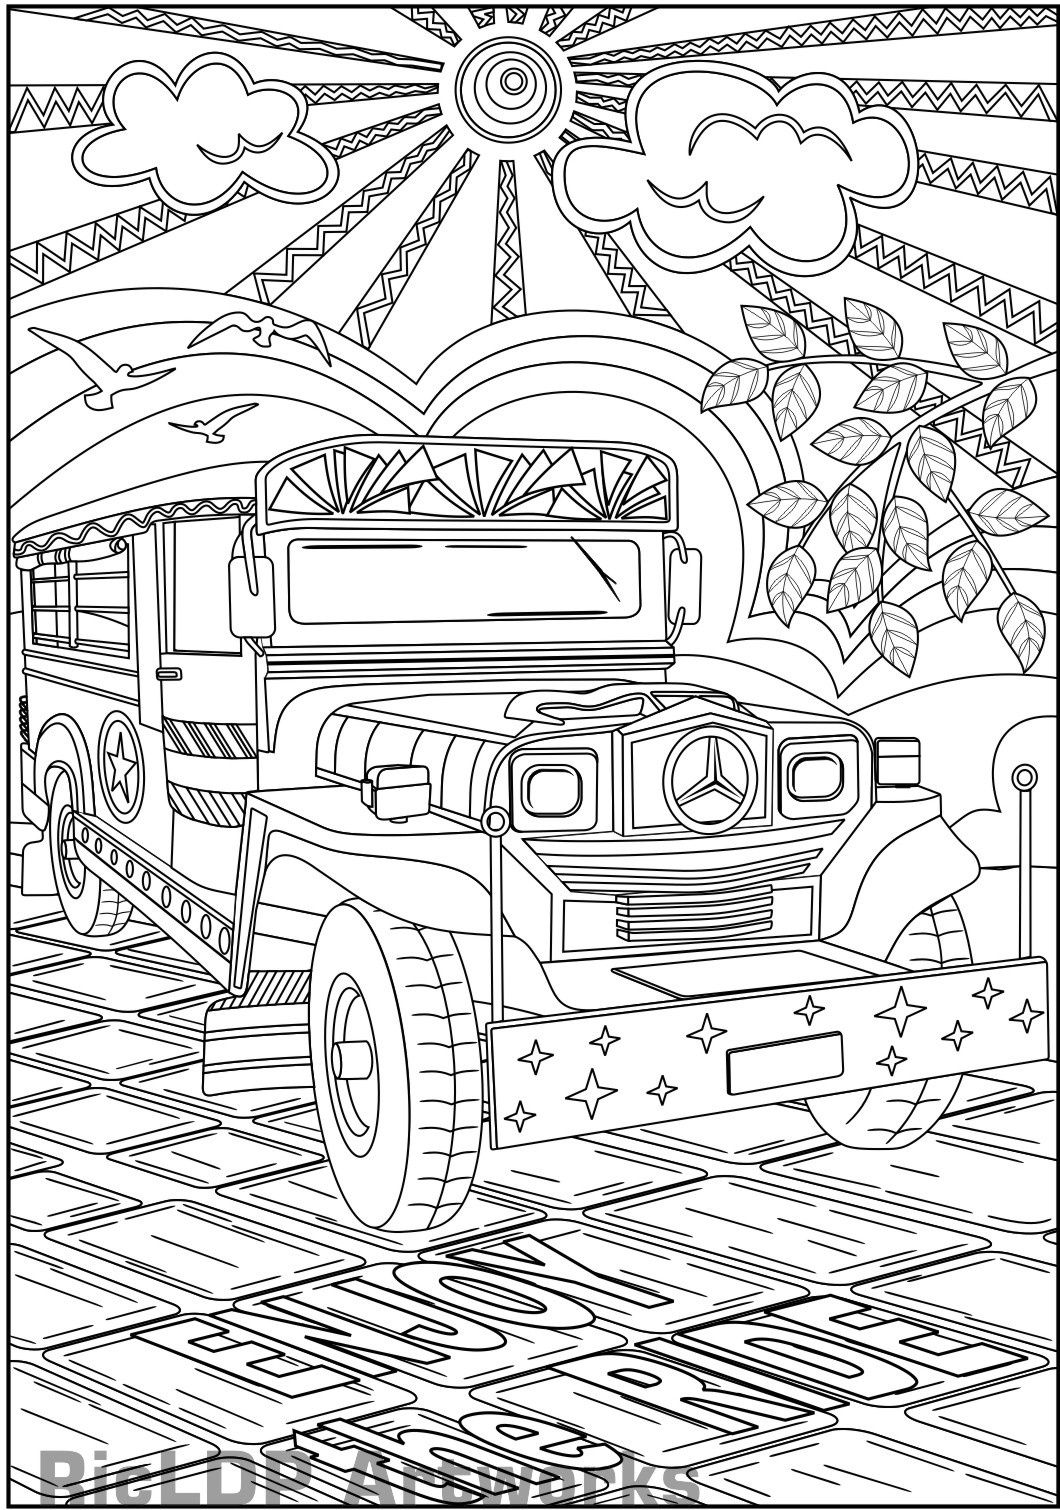 Coloring pages jeep - Enjoy The Ride Philippine Jeepney Coloring Page